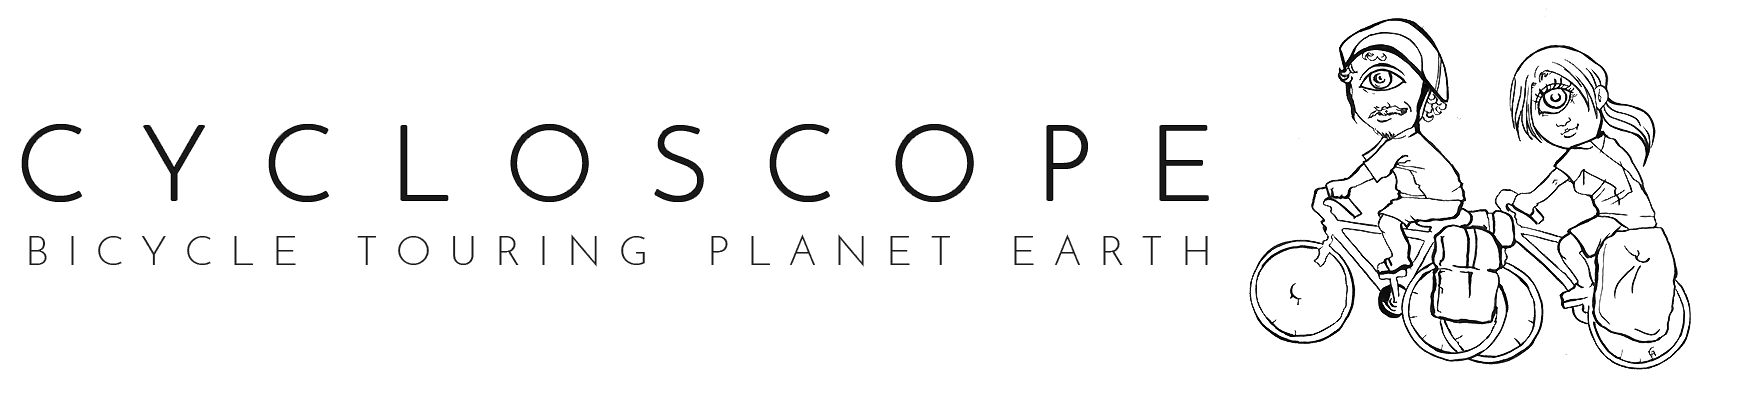 Cycloscope: bicycle touring planet Earth logo